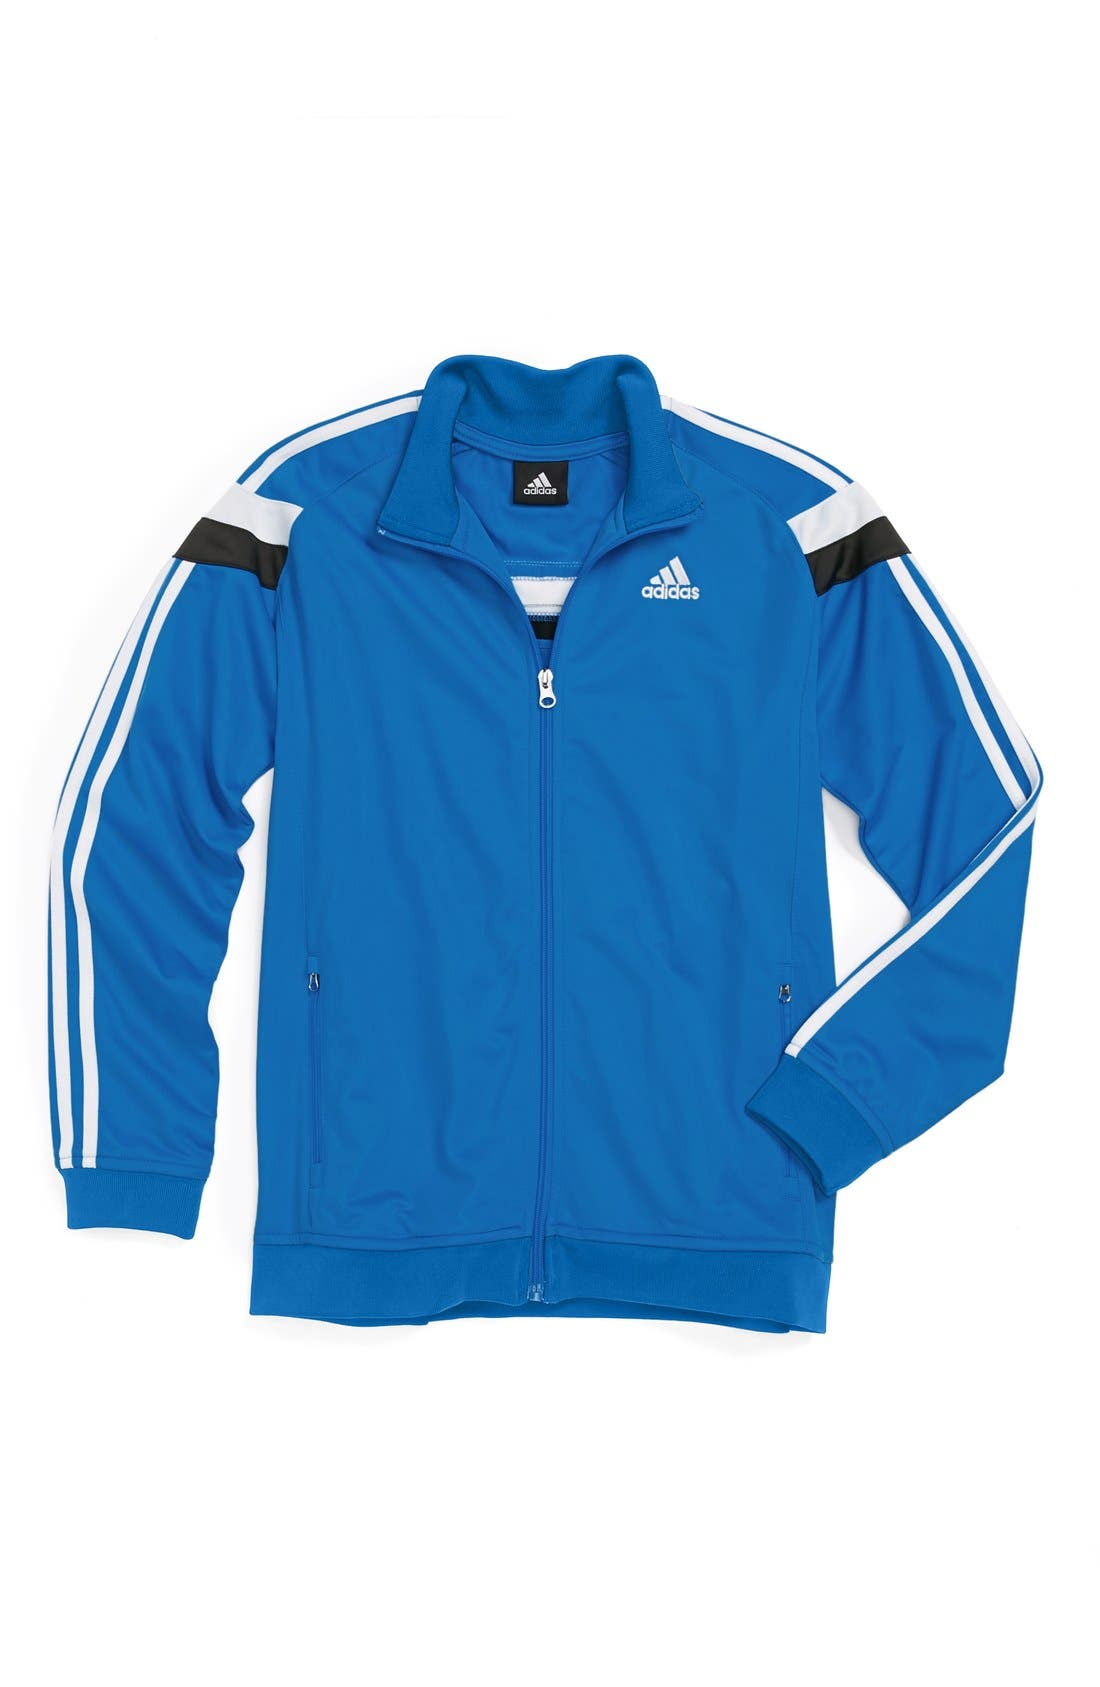 Alternate Image 1 Selected - adidas 'Anthem' Jacket (Big Boys)